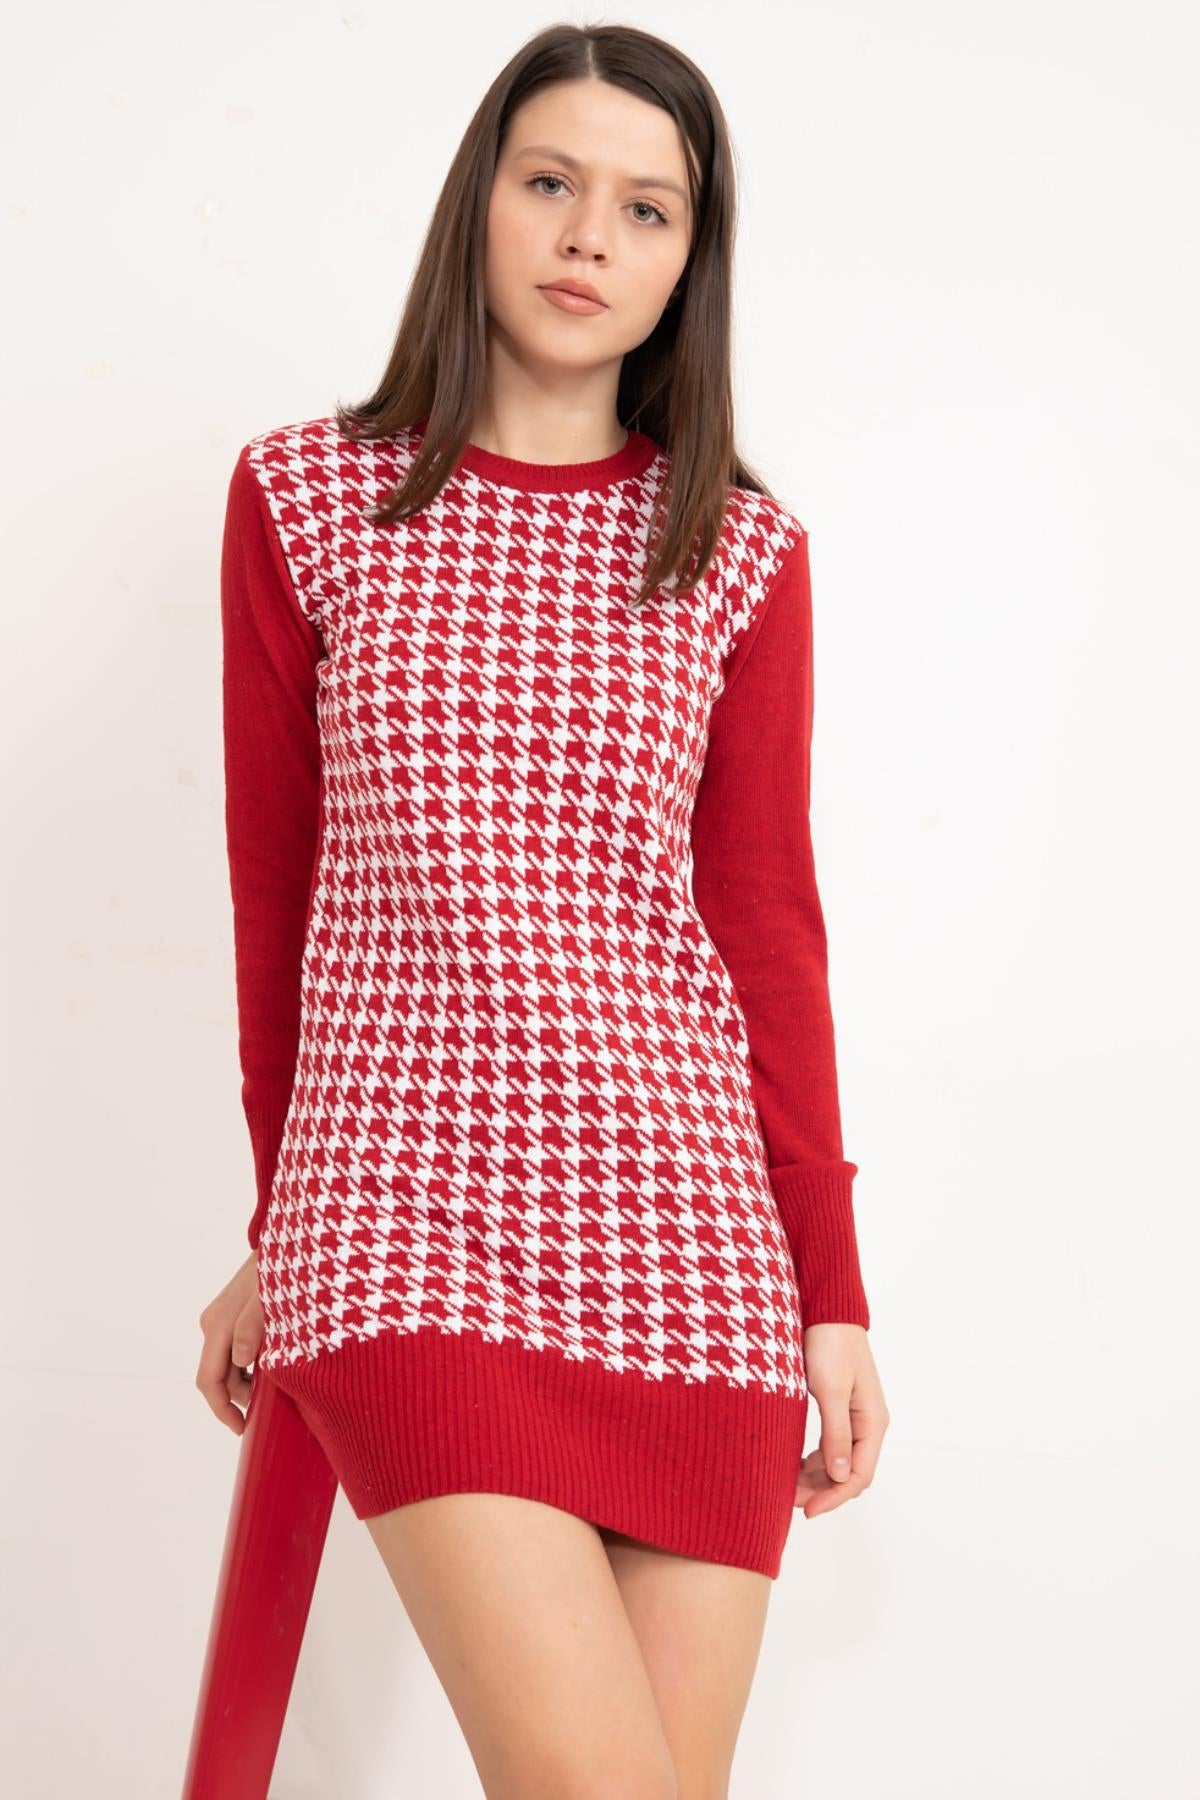 Red Front patterned knitwear tunic.